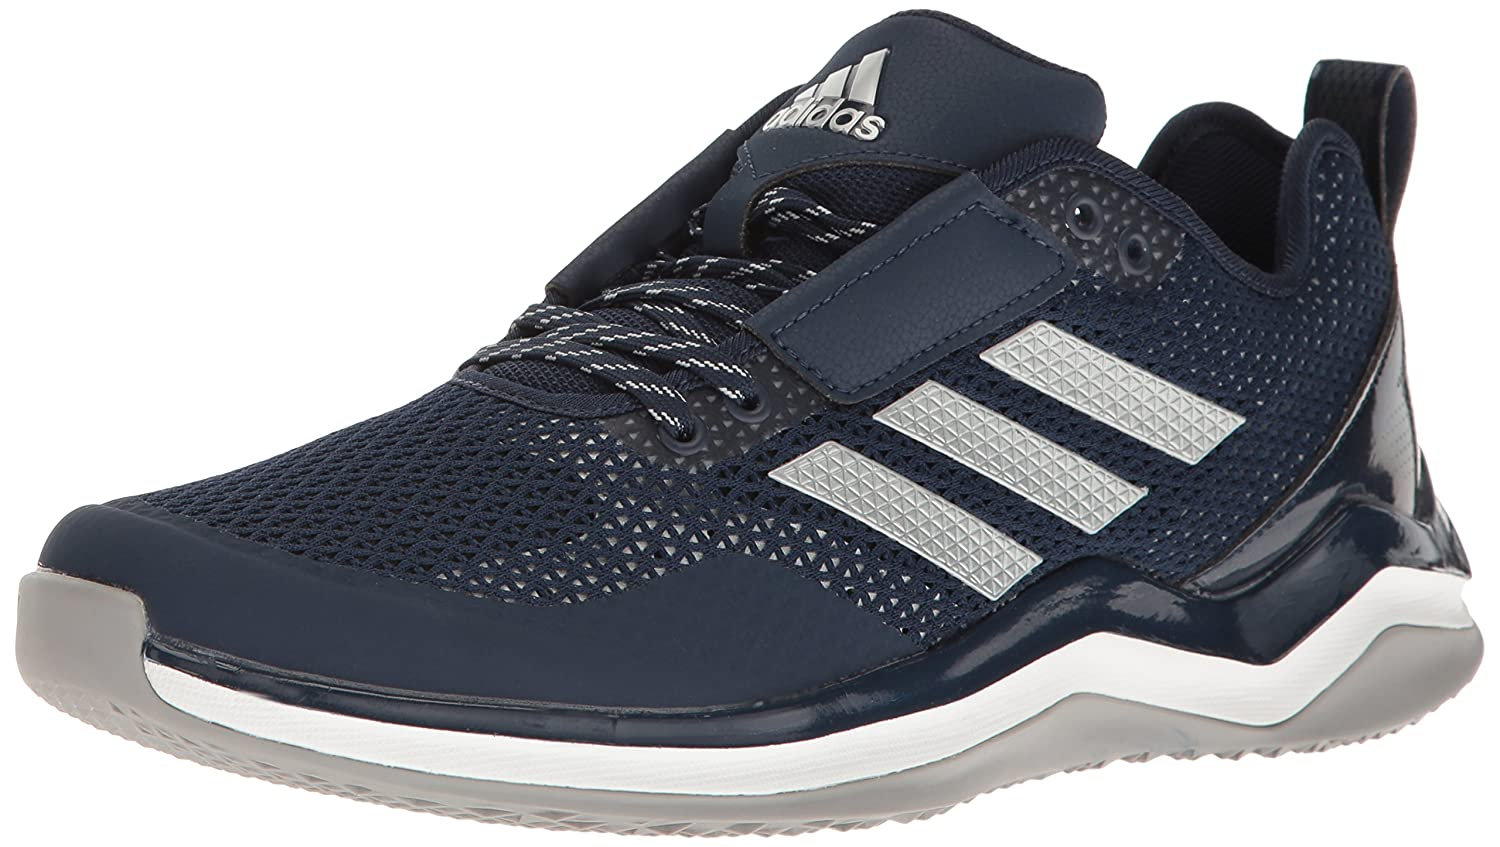 adidas メンズ Speed Trainer 3.0 B01LWYNA84 12 D(M) US|Collegiate Navy/Metallic Silver/White Collegiate Navy/Metallic Silver/White 12 D(M) US